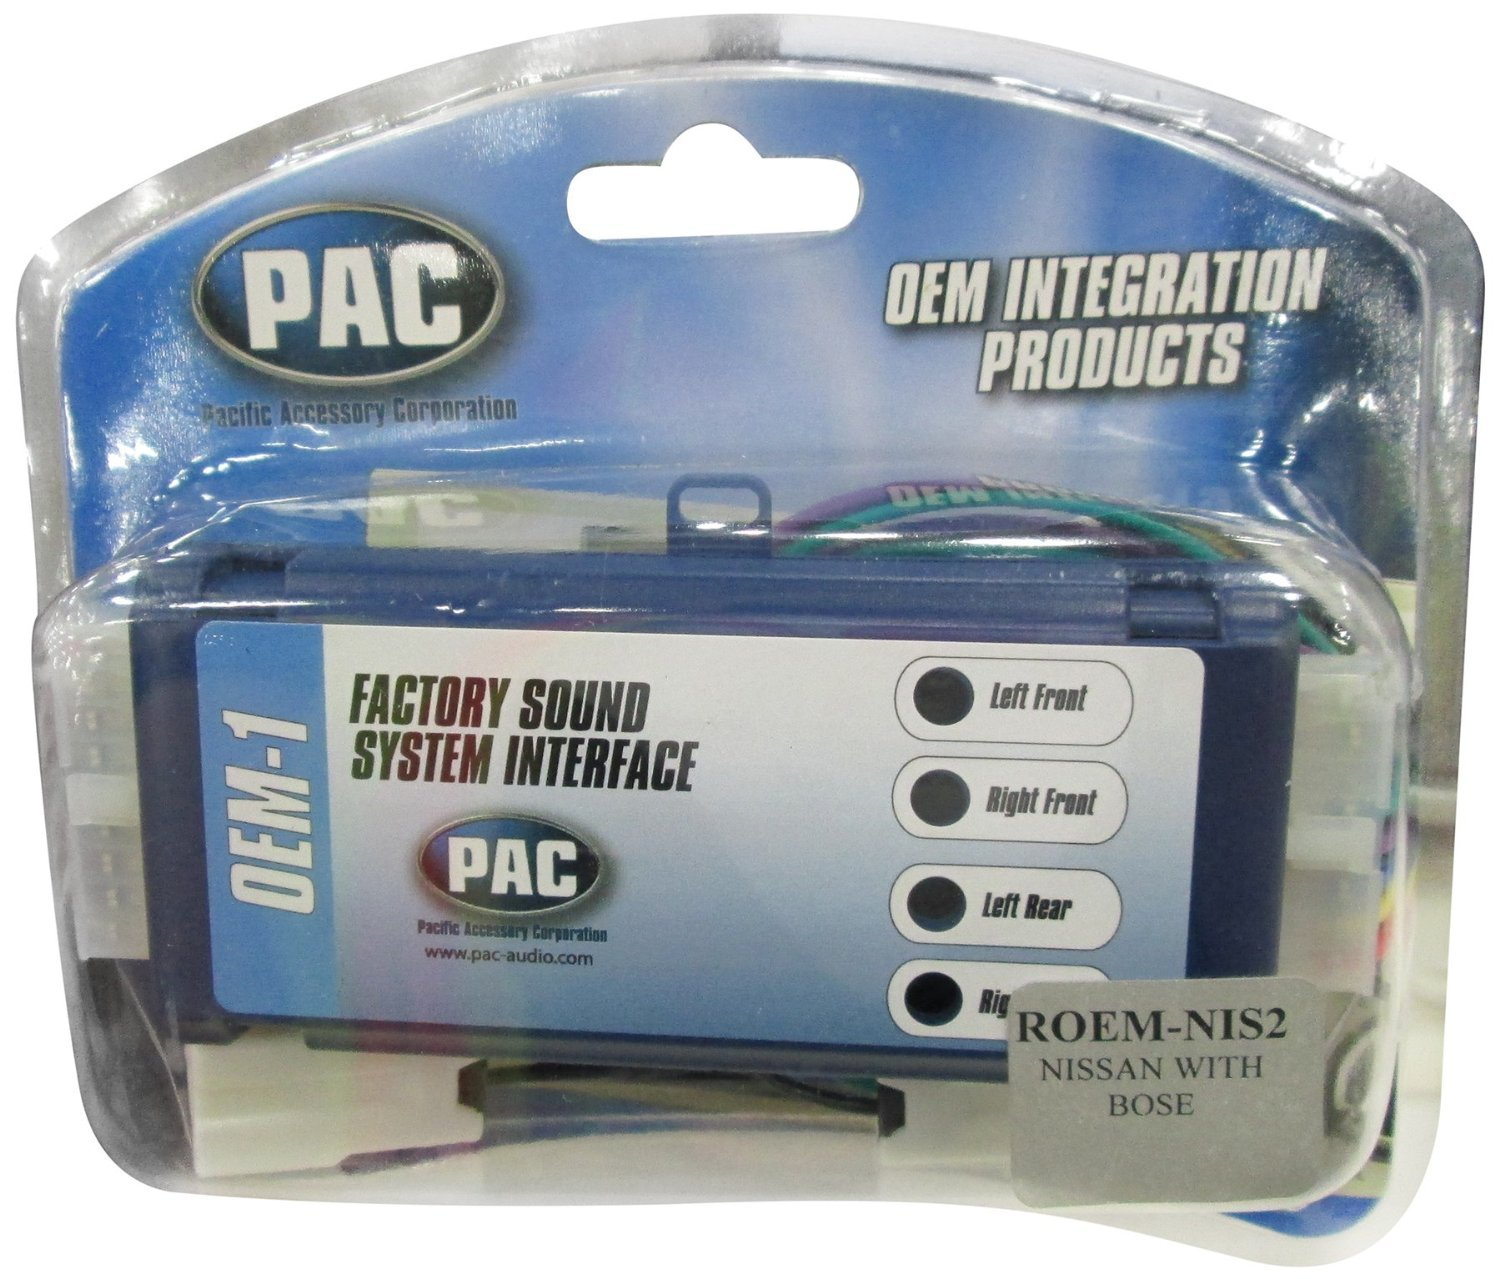 Pac Roem Nis2 System Interface Kit To Replace Factory 95 Nissan Sentra Speaker Wiring Diagram Radio And Integrate Amplifiers For 1995 2002 Vehicles With Bose Audio